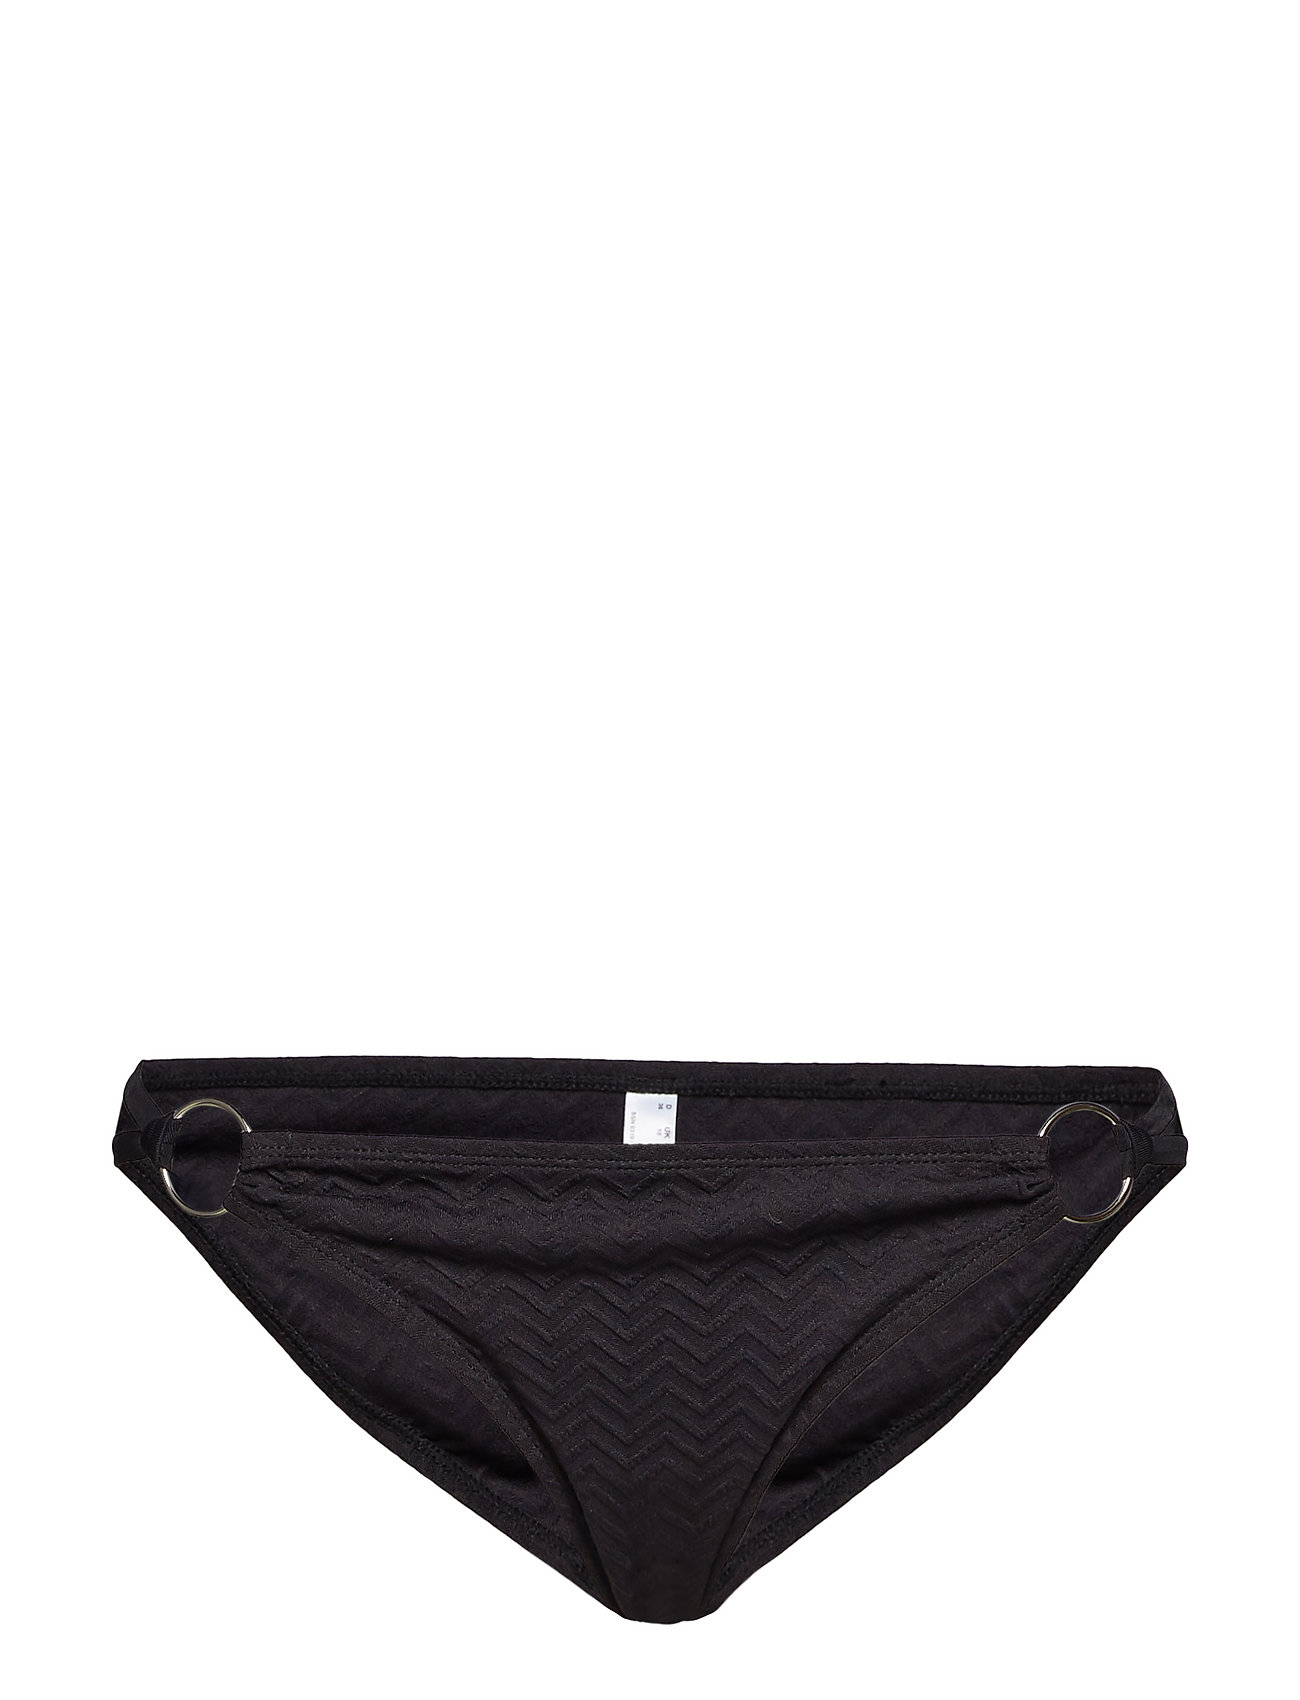 Esprit Bodywear Women Beach Bottoms - BLACK